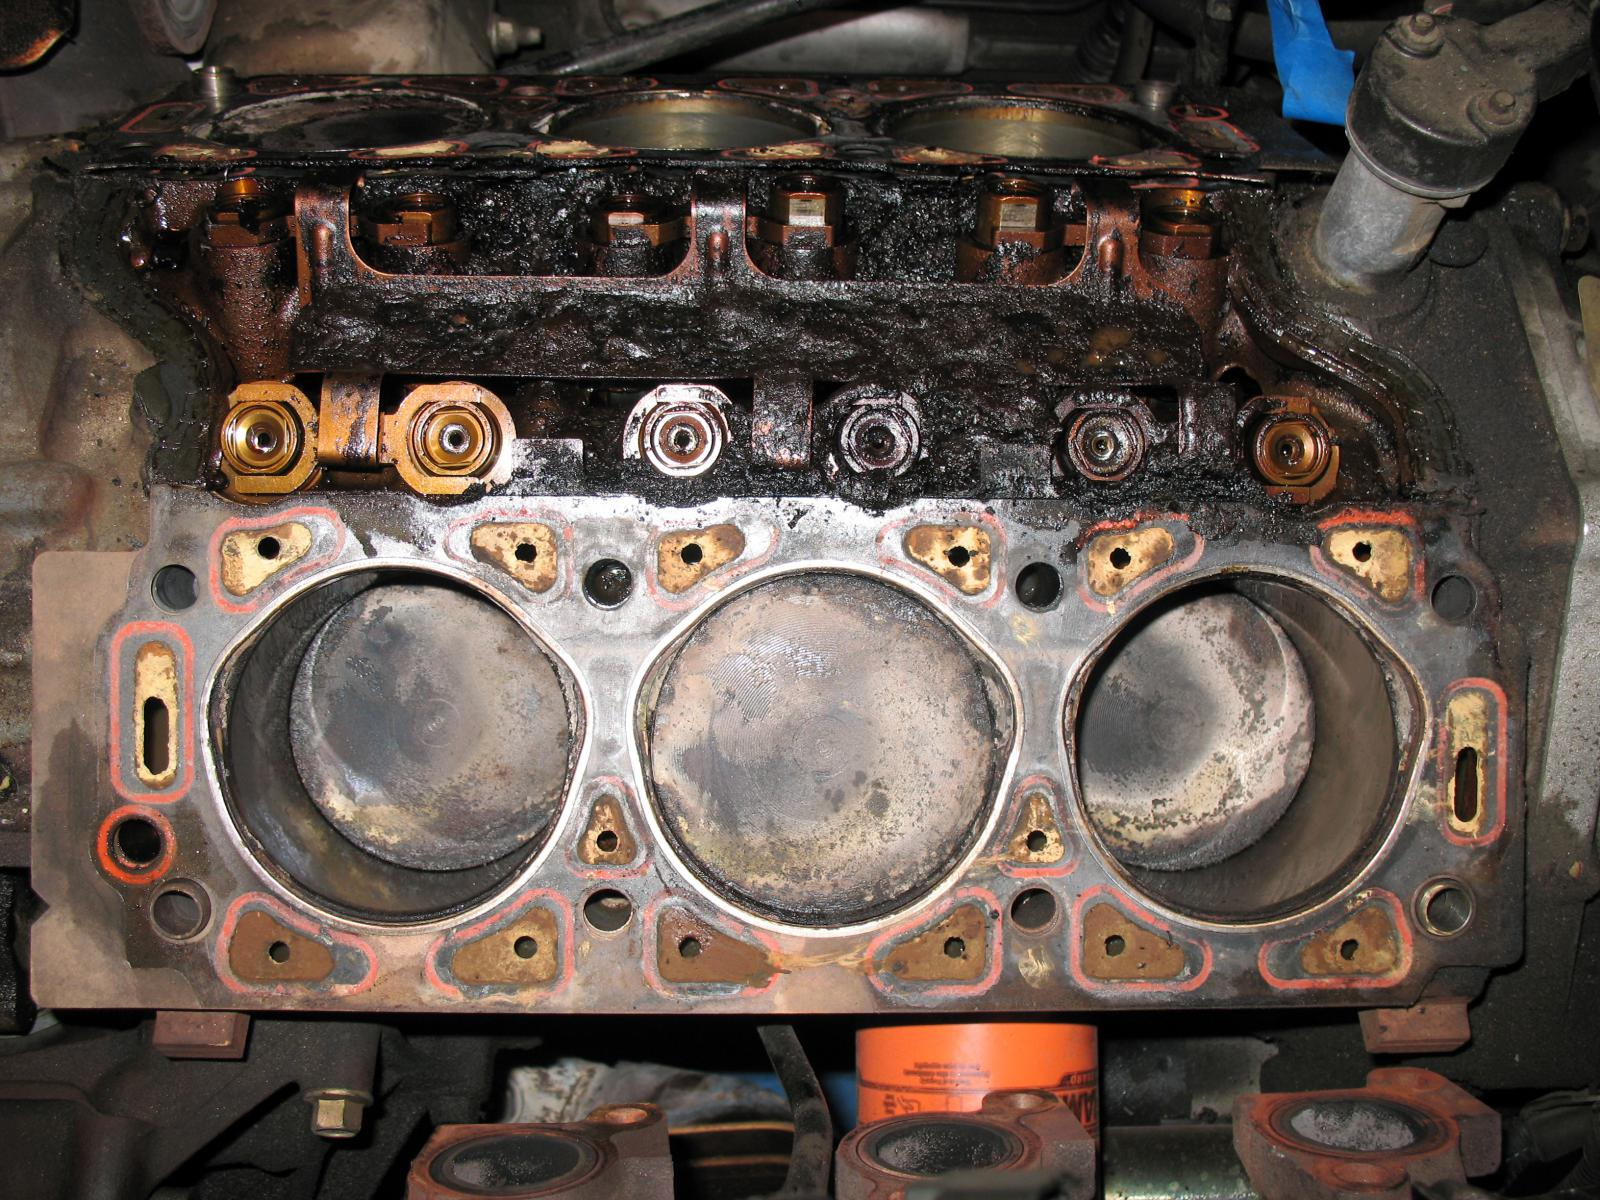 How Much Does A Head Gasket Repair Cost Last Chance